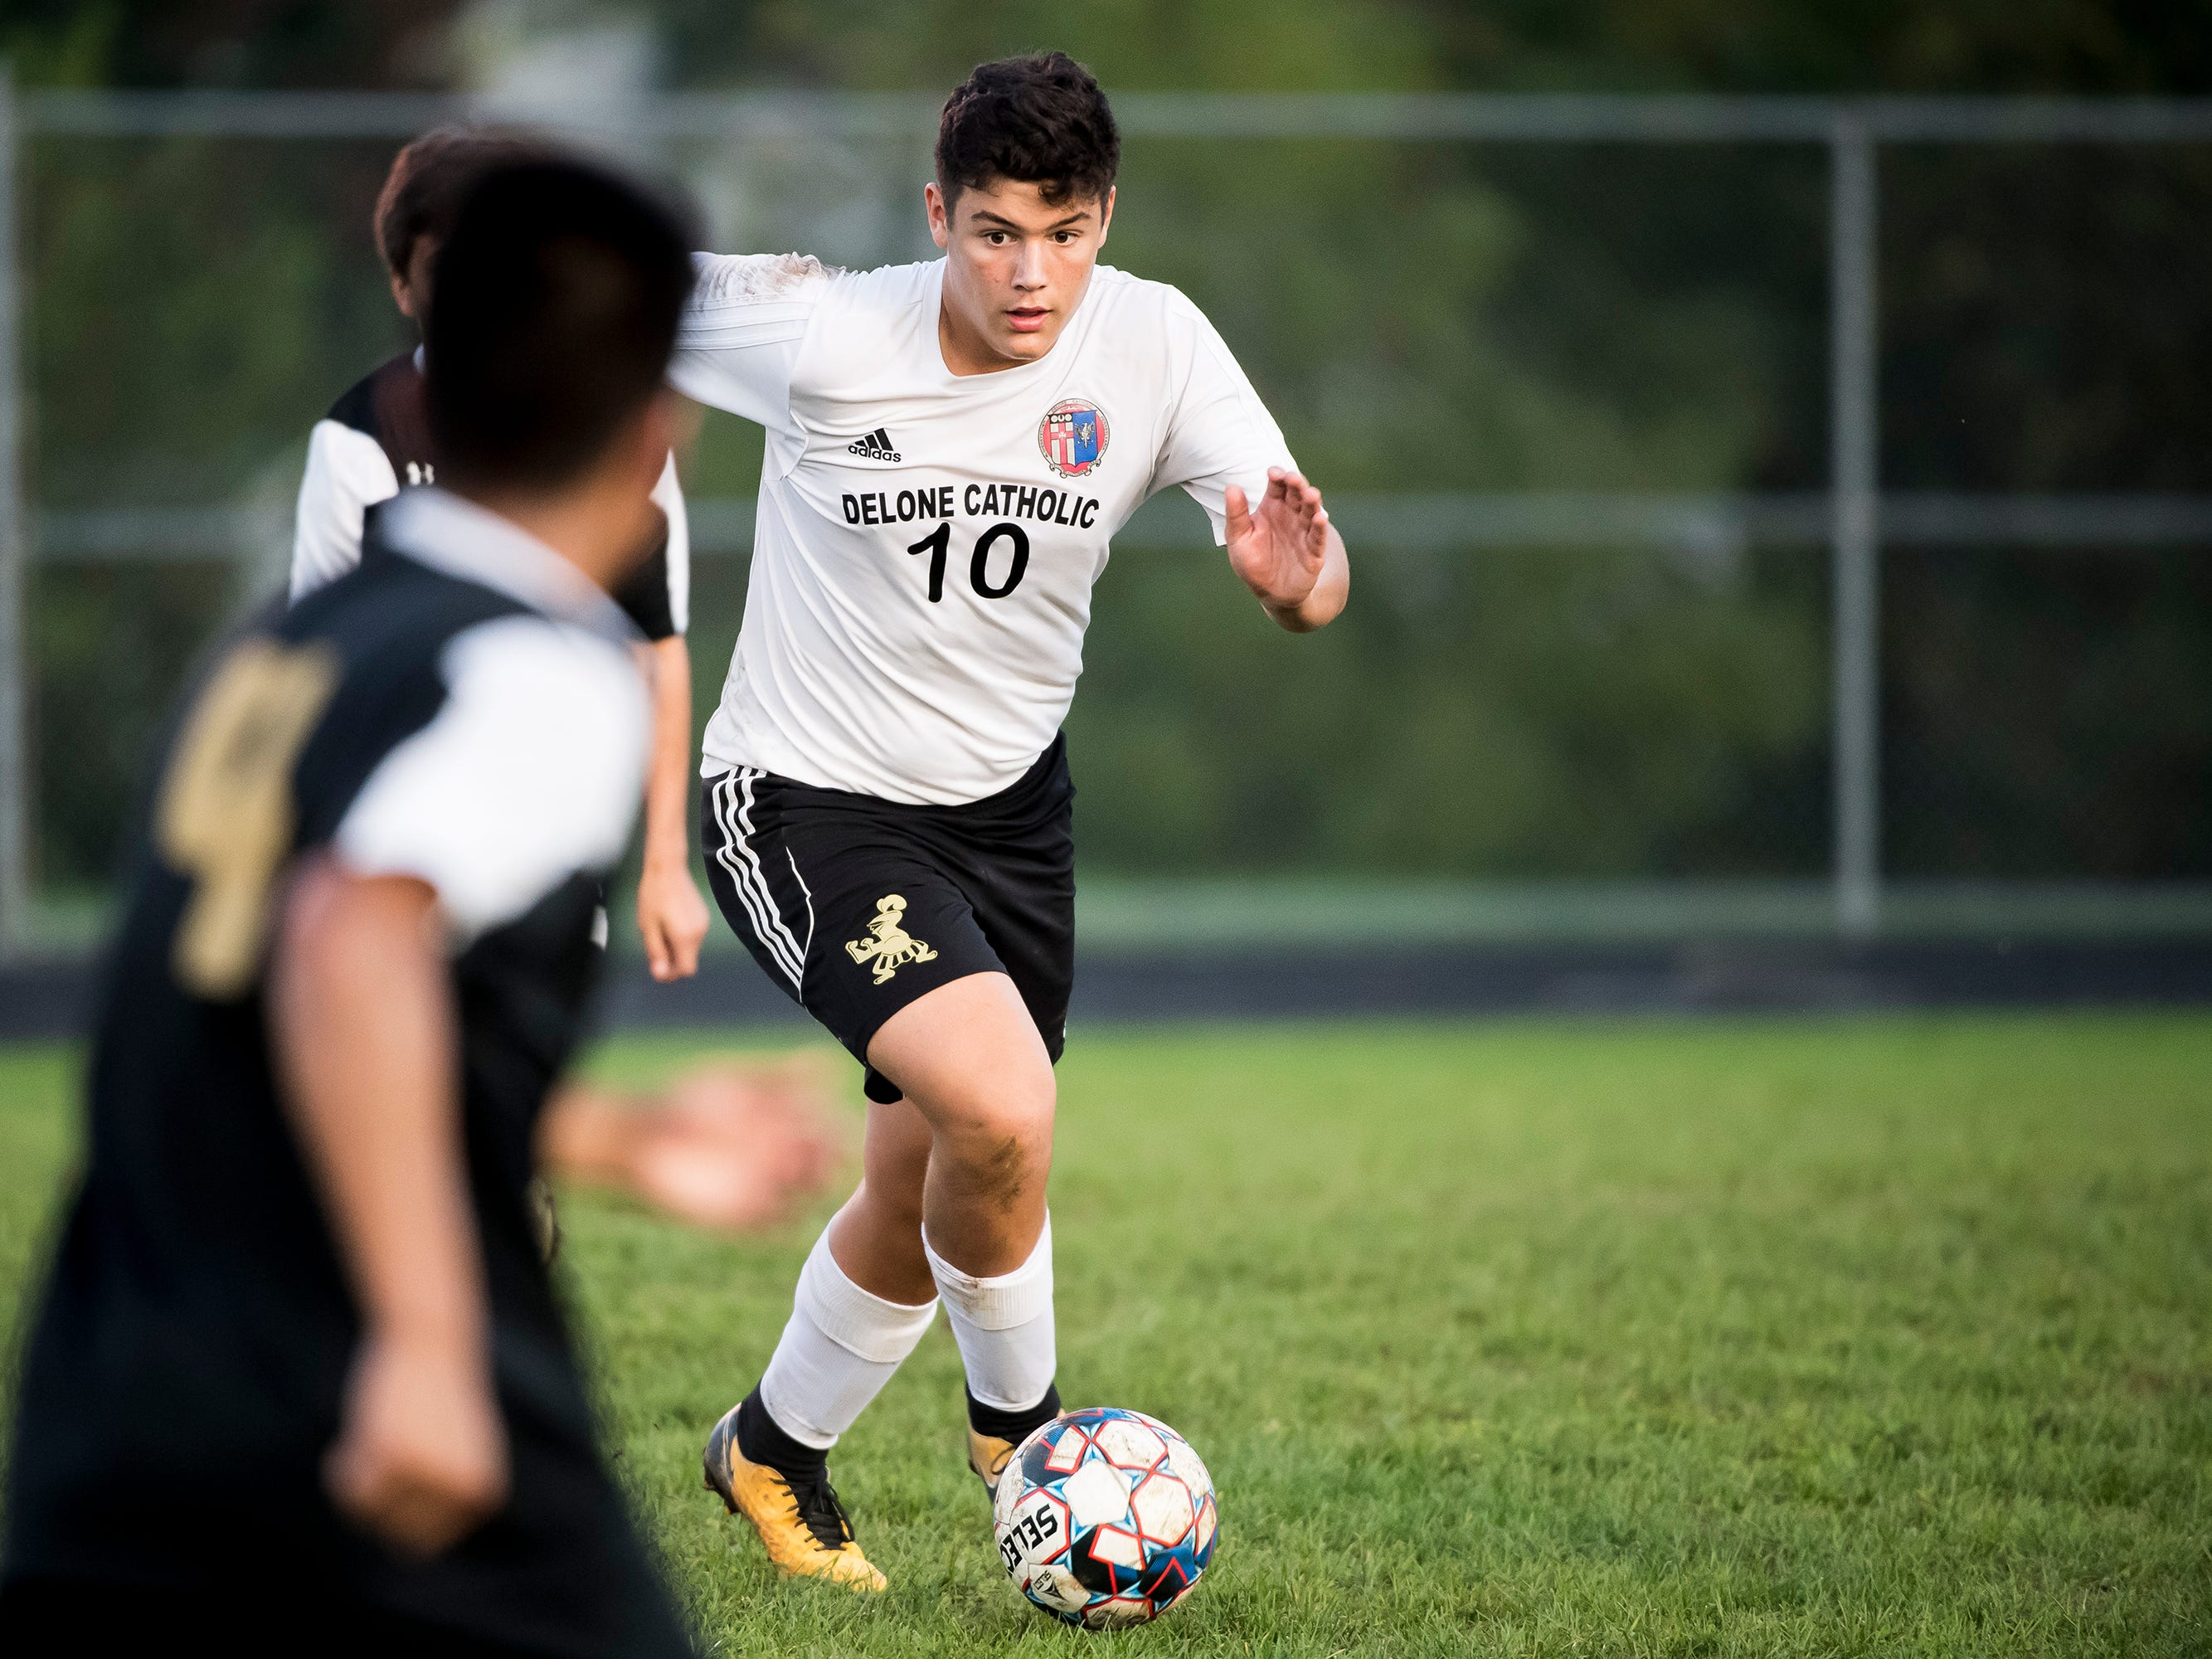 Delone Catholic's Thomas Dolce dribbles down the field during a game against Biglerville on Wednesday, October 3, 2018. The Squires fell 3-0.